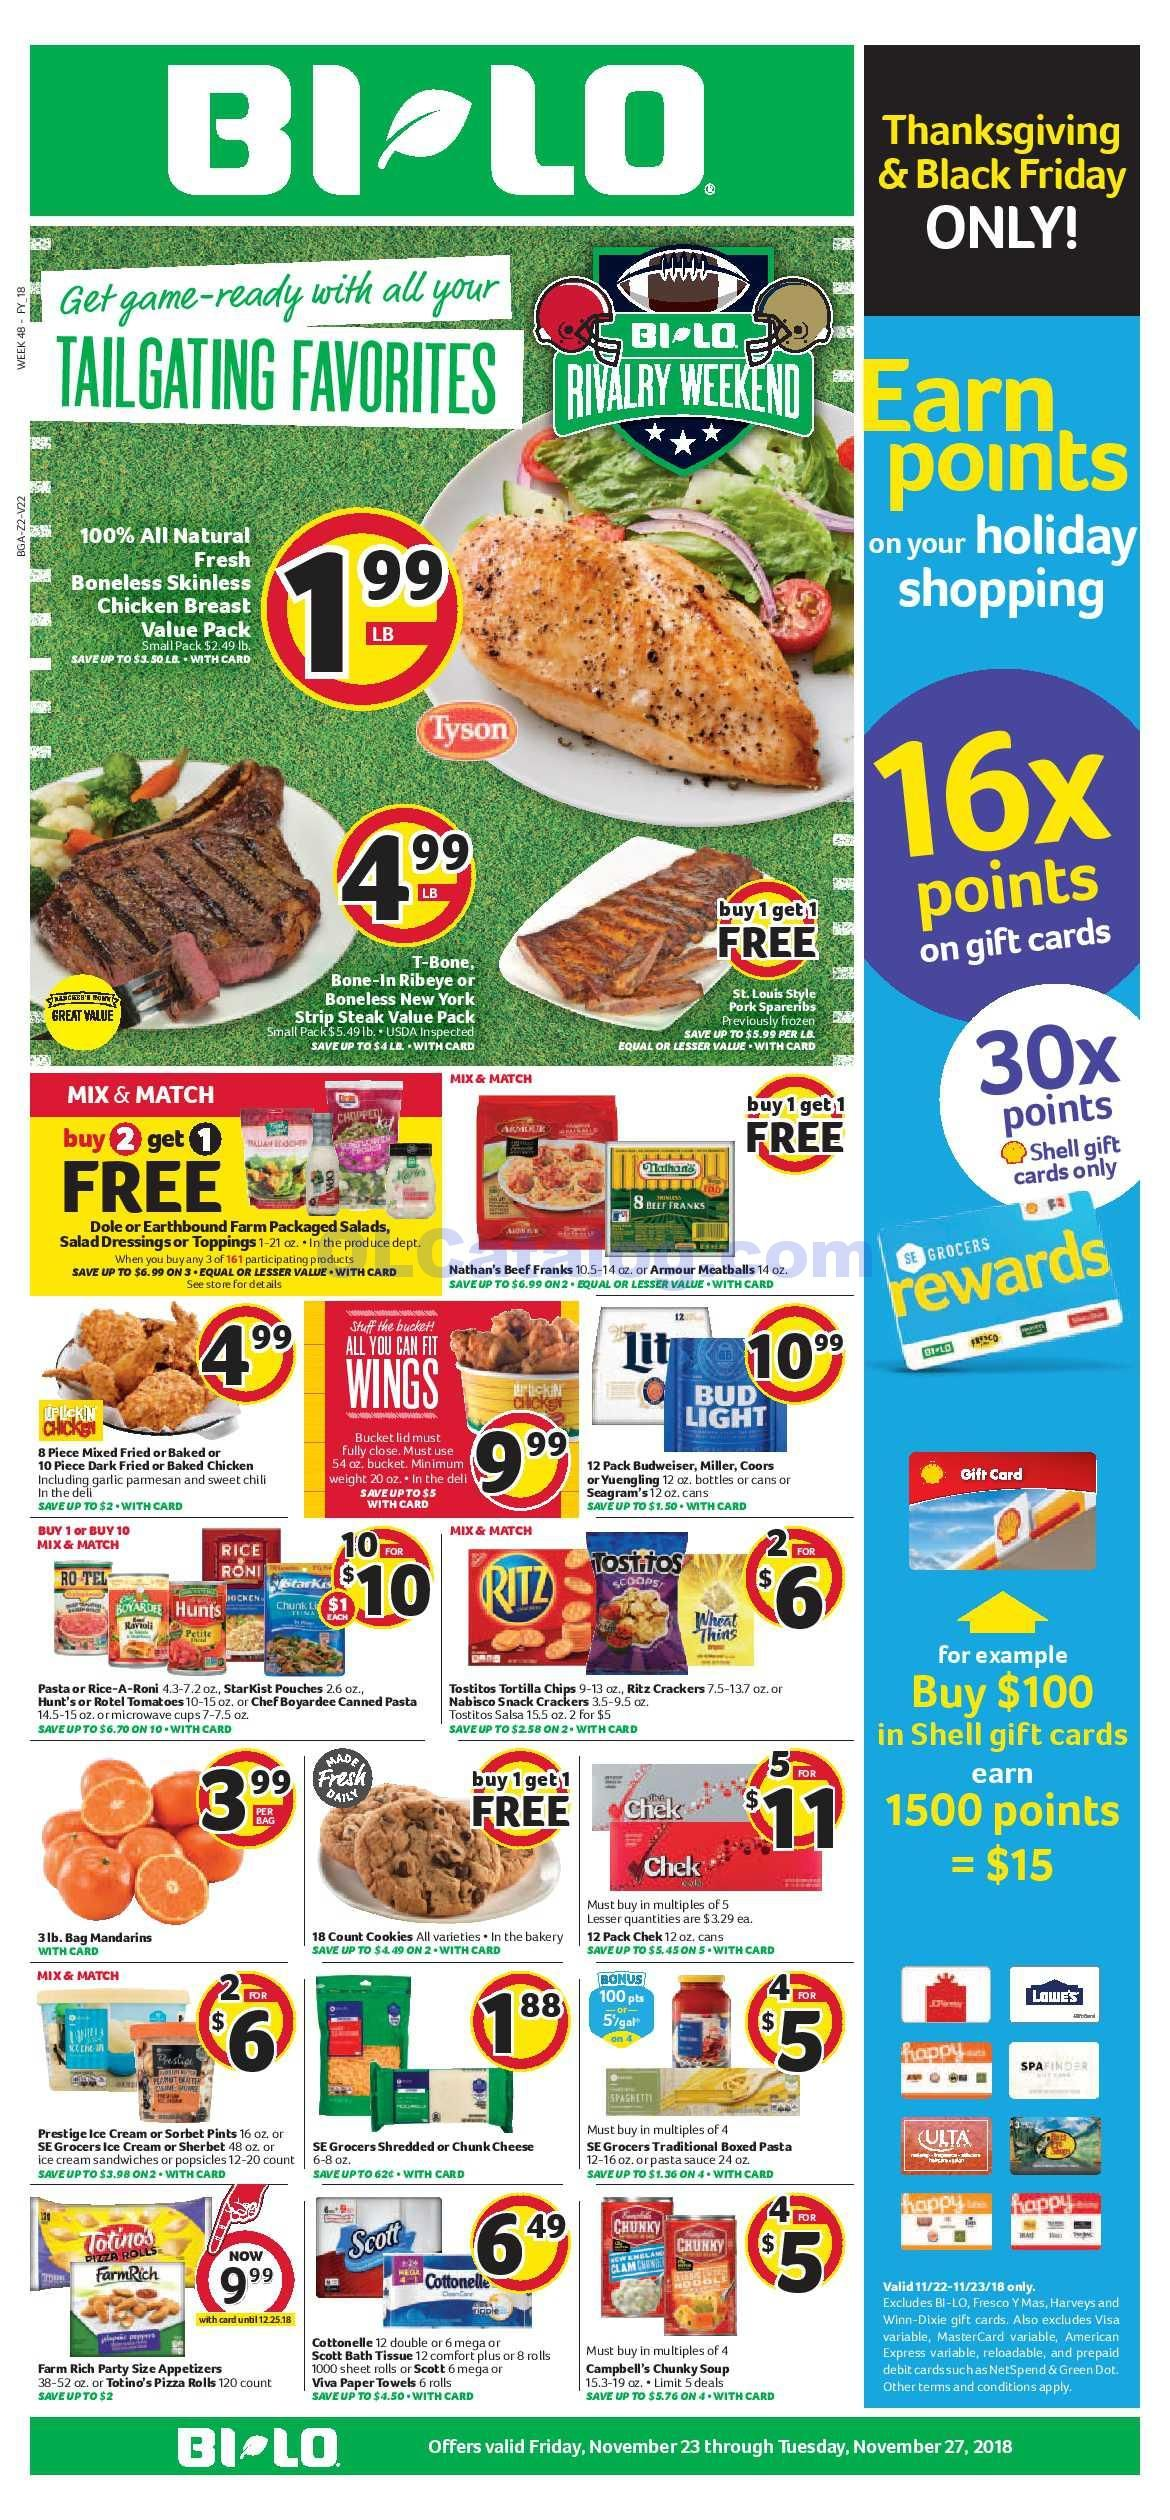 Bilo Weekly Ad November 23 27 2018 View The Latest Flyer And